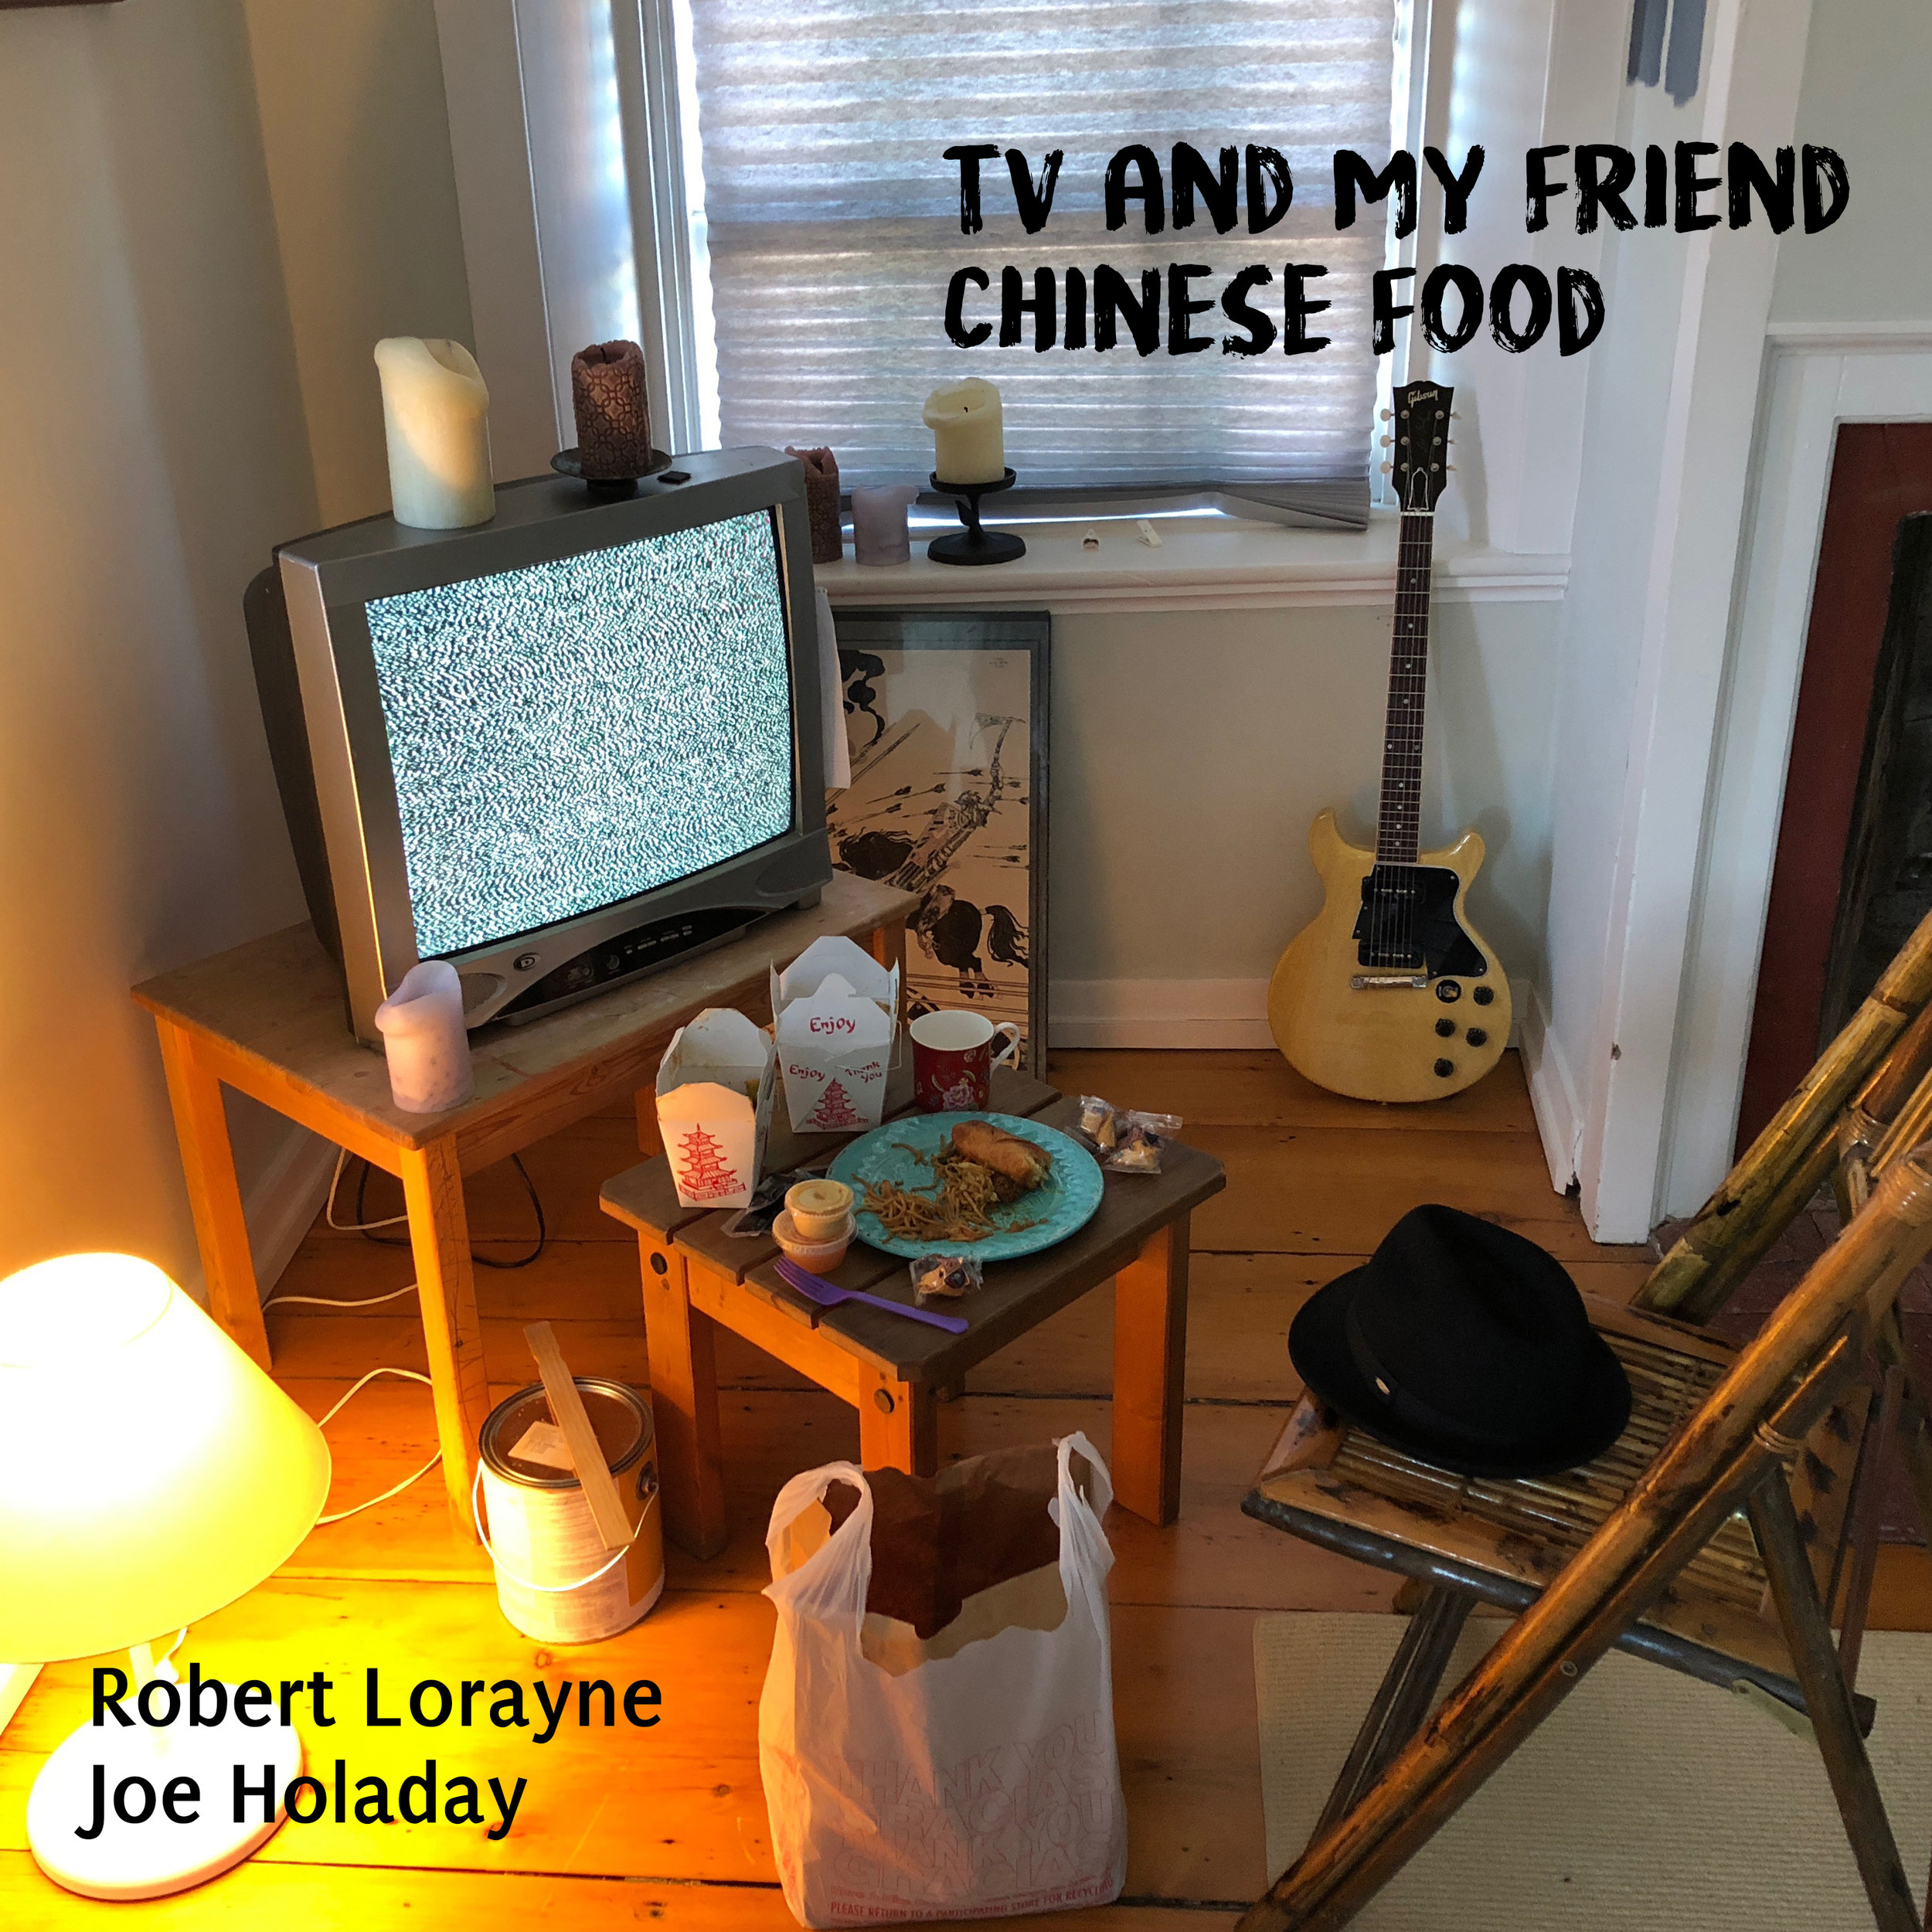 TV And My Friend Chinese Food cover.jpg